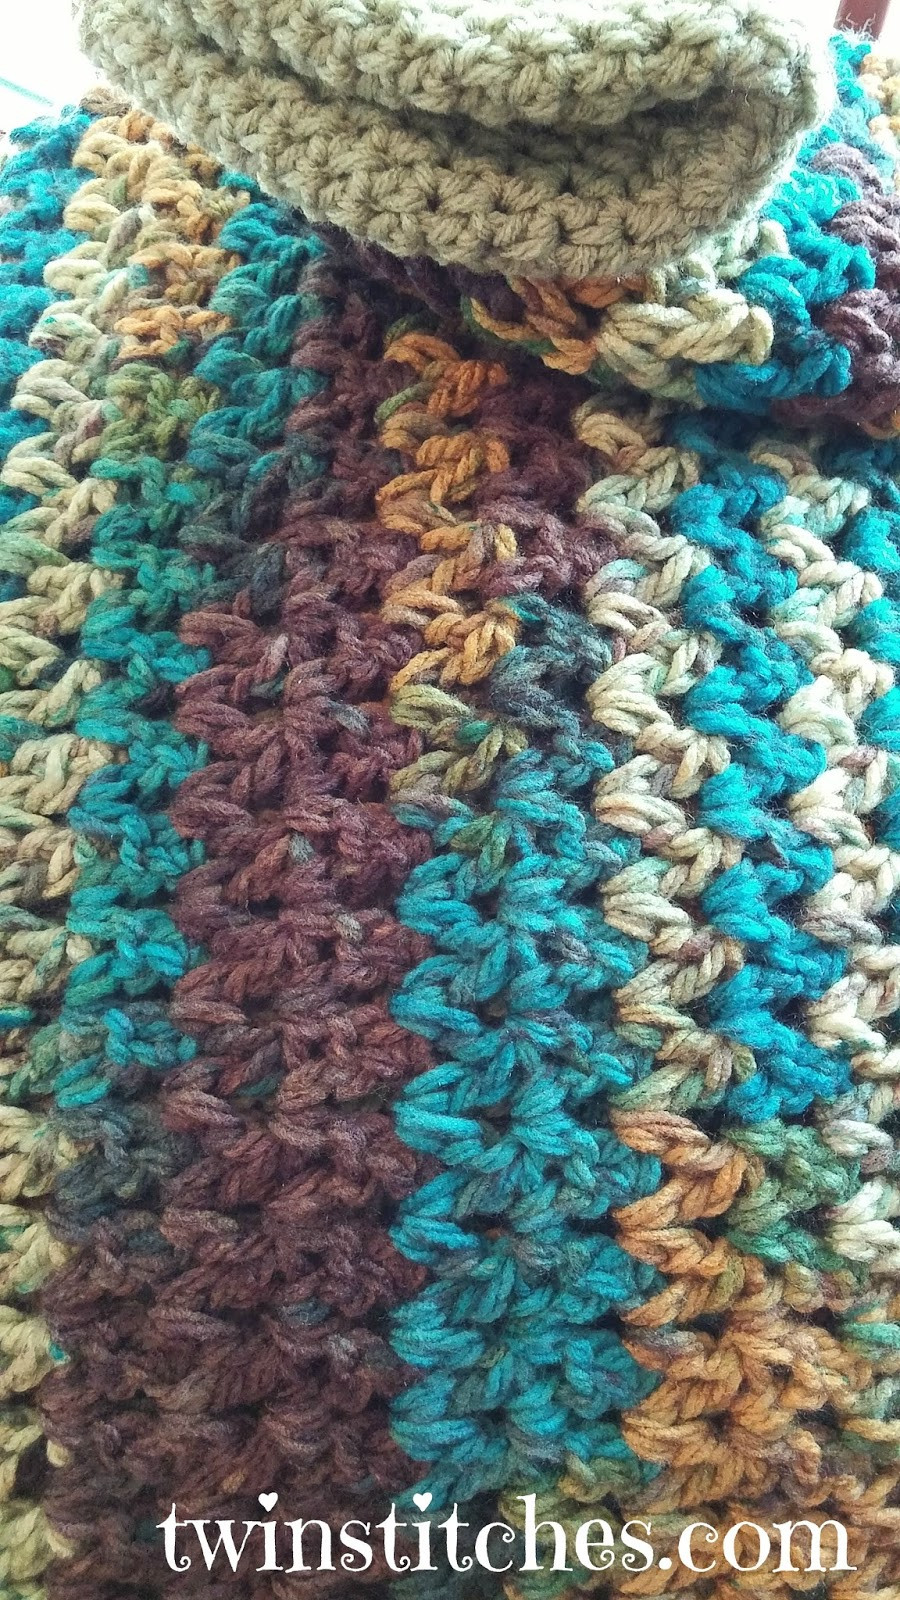 Blanket Yarn Patterns Unique Tw In Stitches Sedona Wobbly Stripes Blanket Free Of Superb 45 Pictures Blanket Yarn Patterns